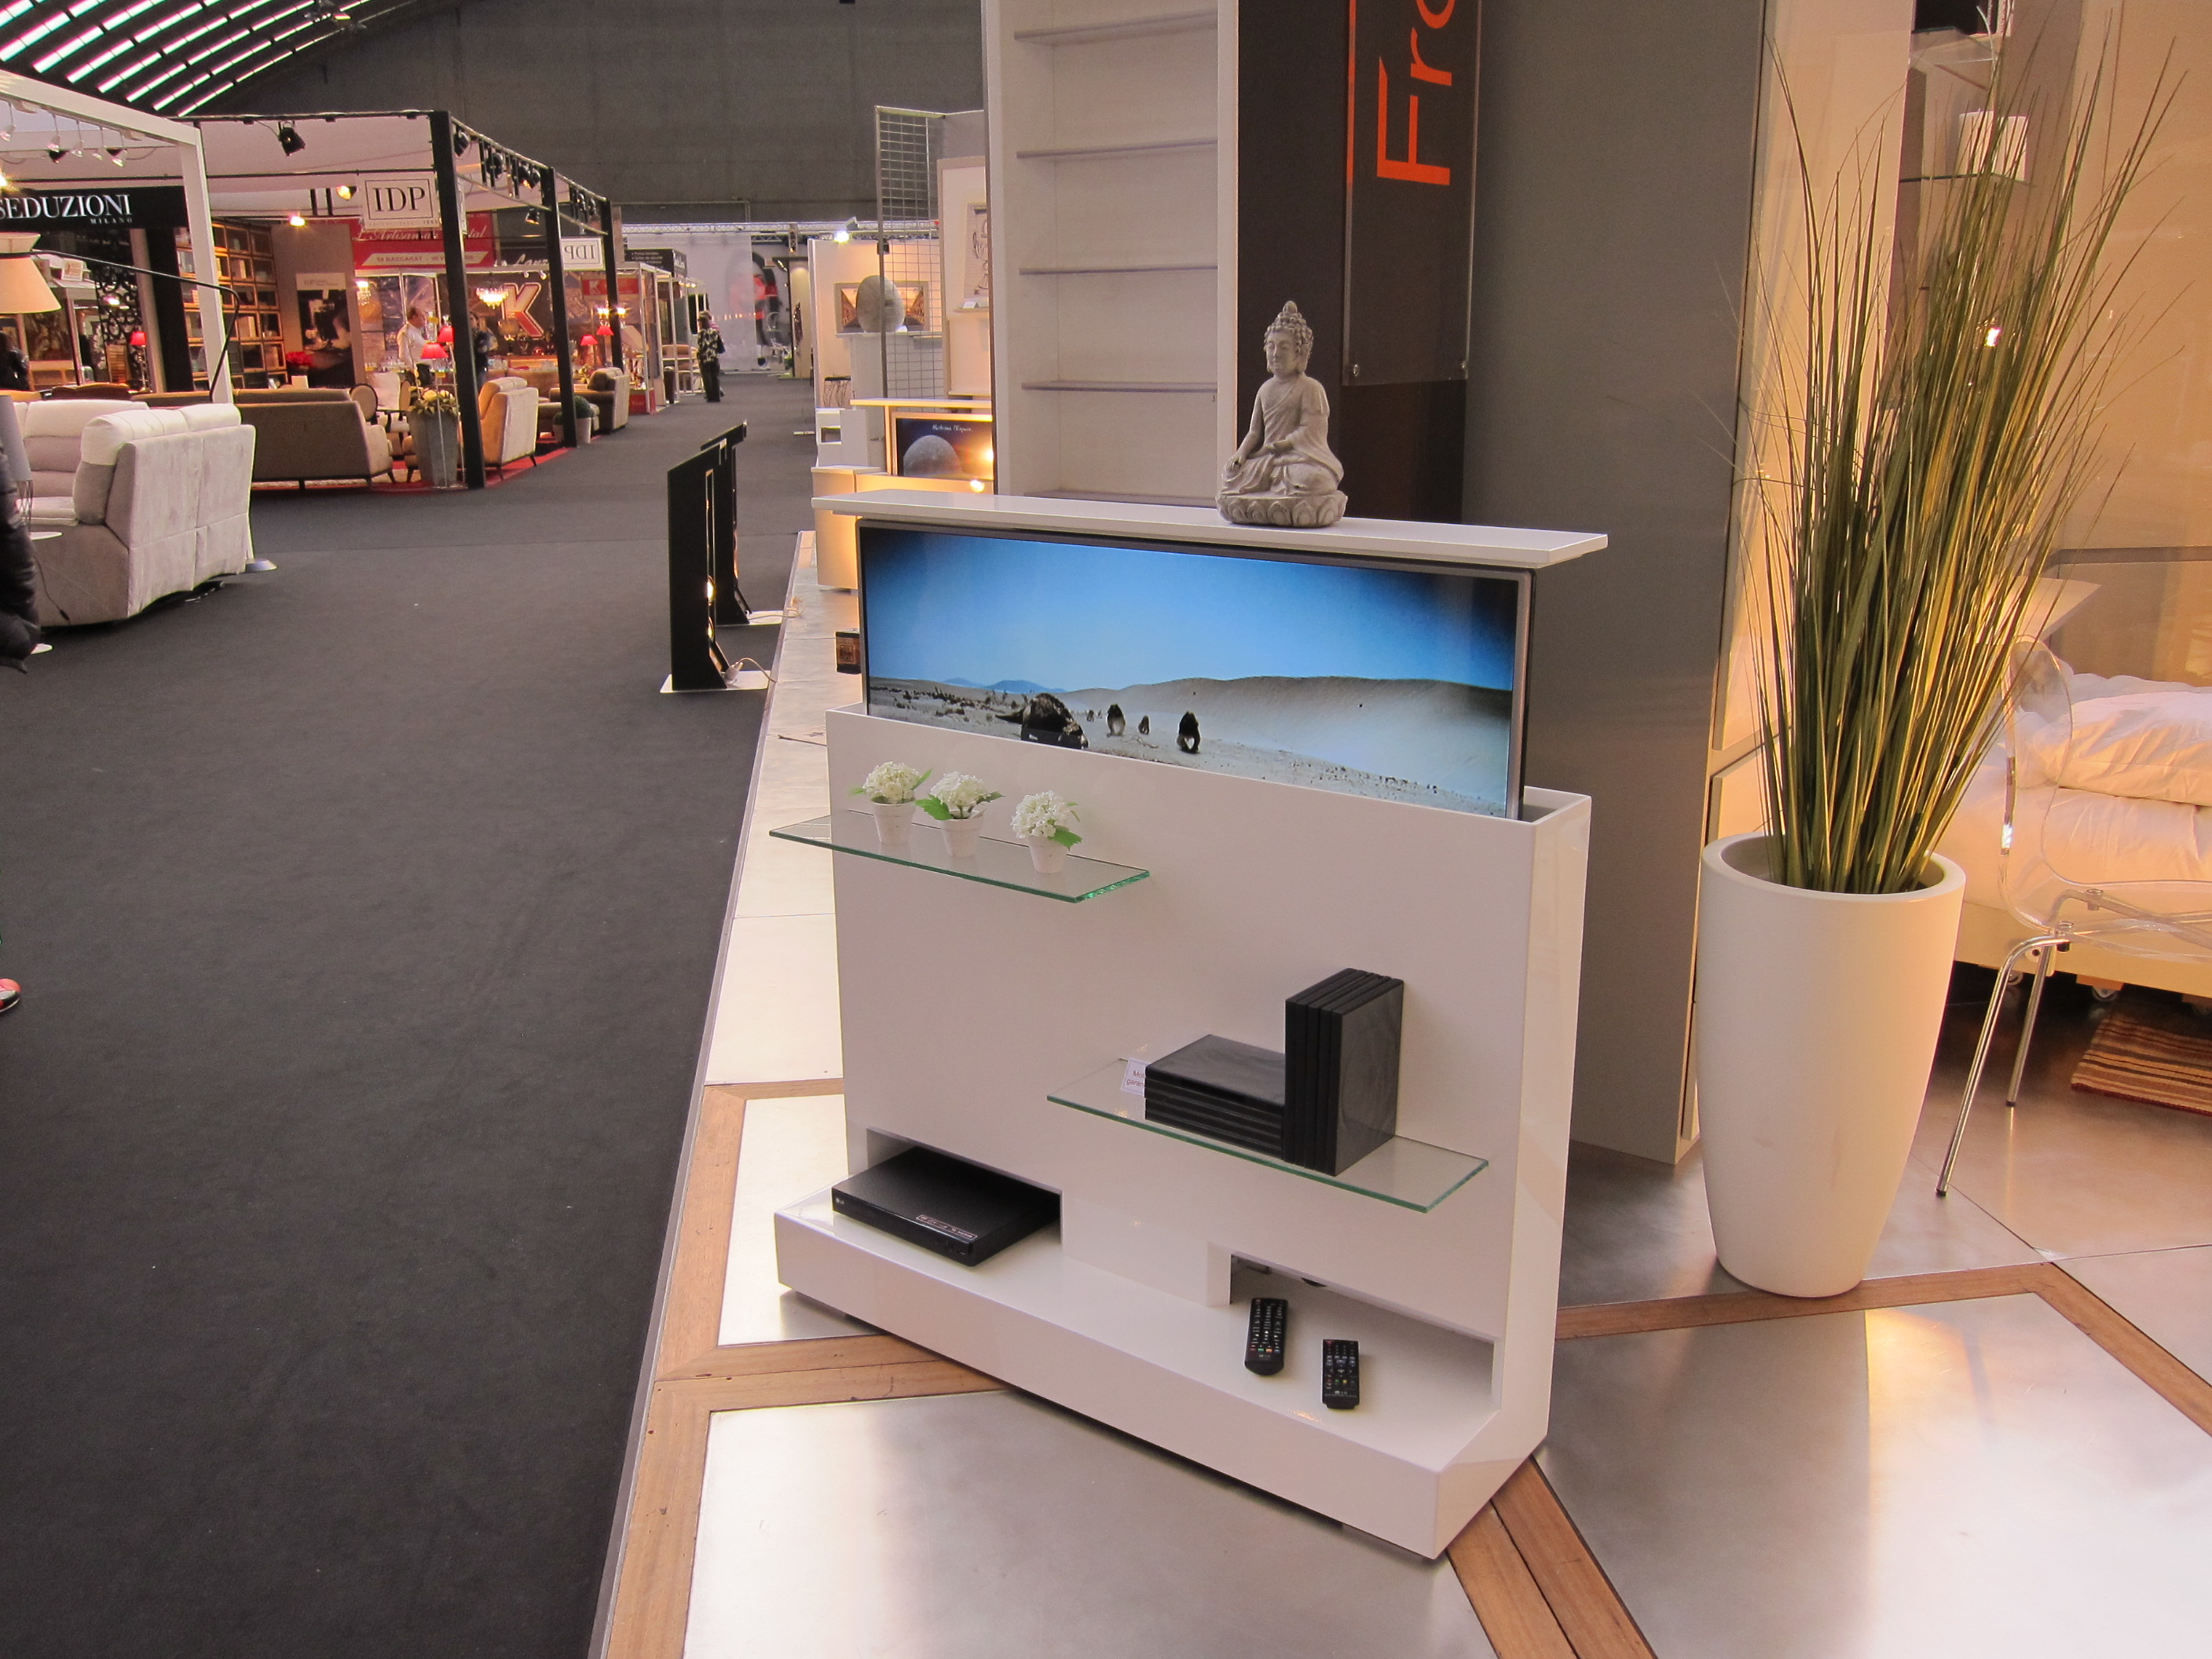 Le Mobilier Gain De Place Fran Ois Desile # Dimension Meubles Tv Ecran Plat